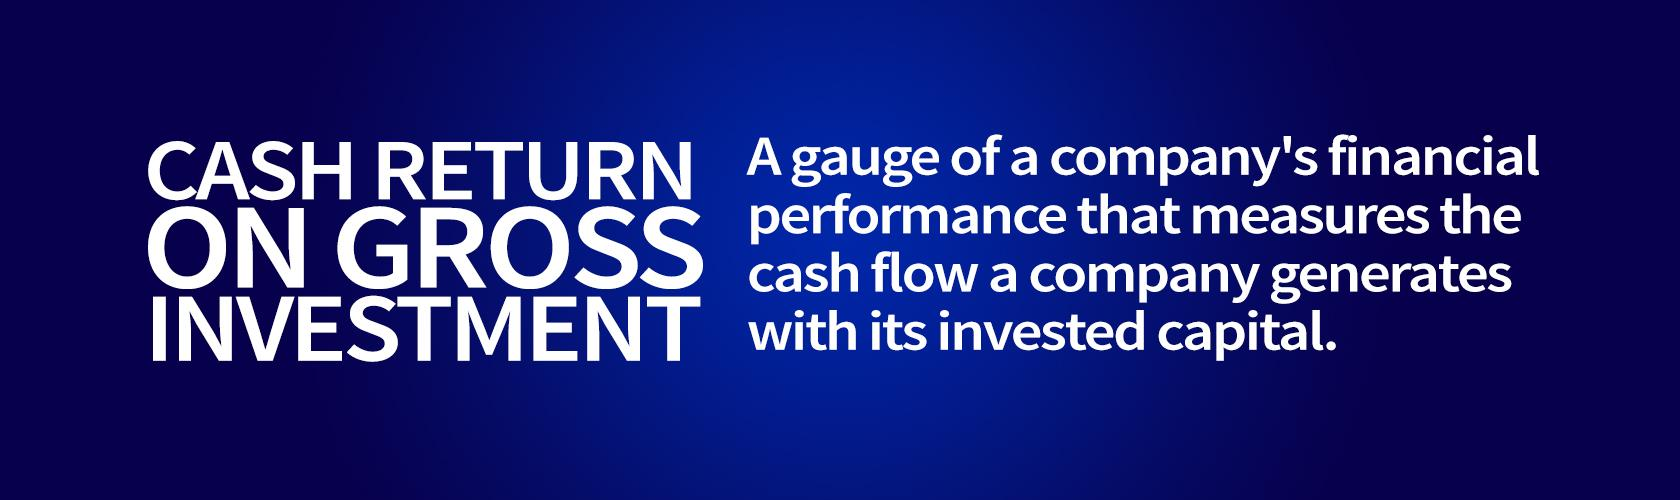 Cash Return on Gross Investment Definition | Paradigm Learning